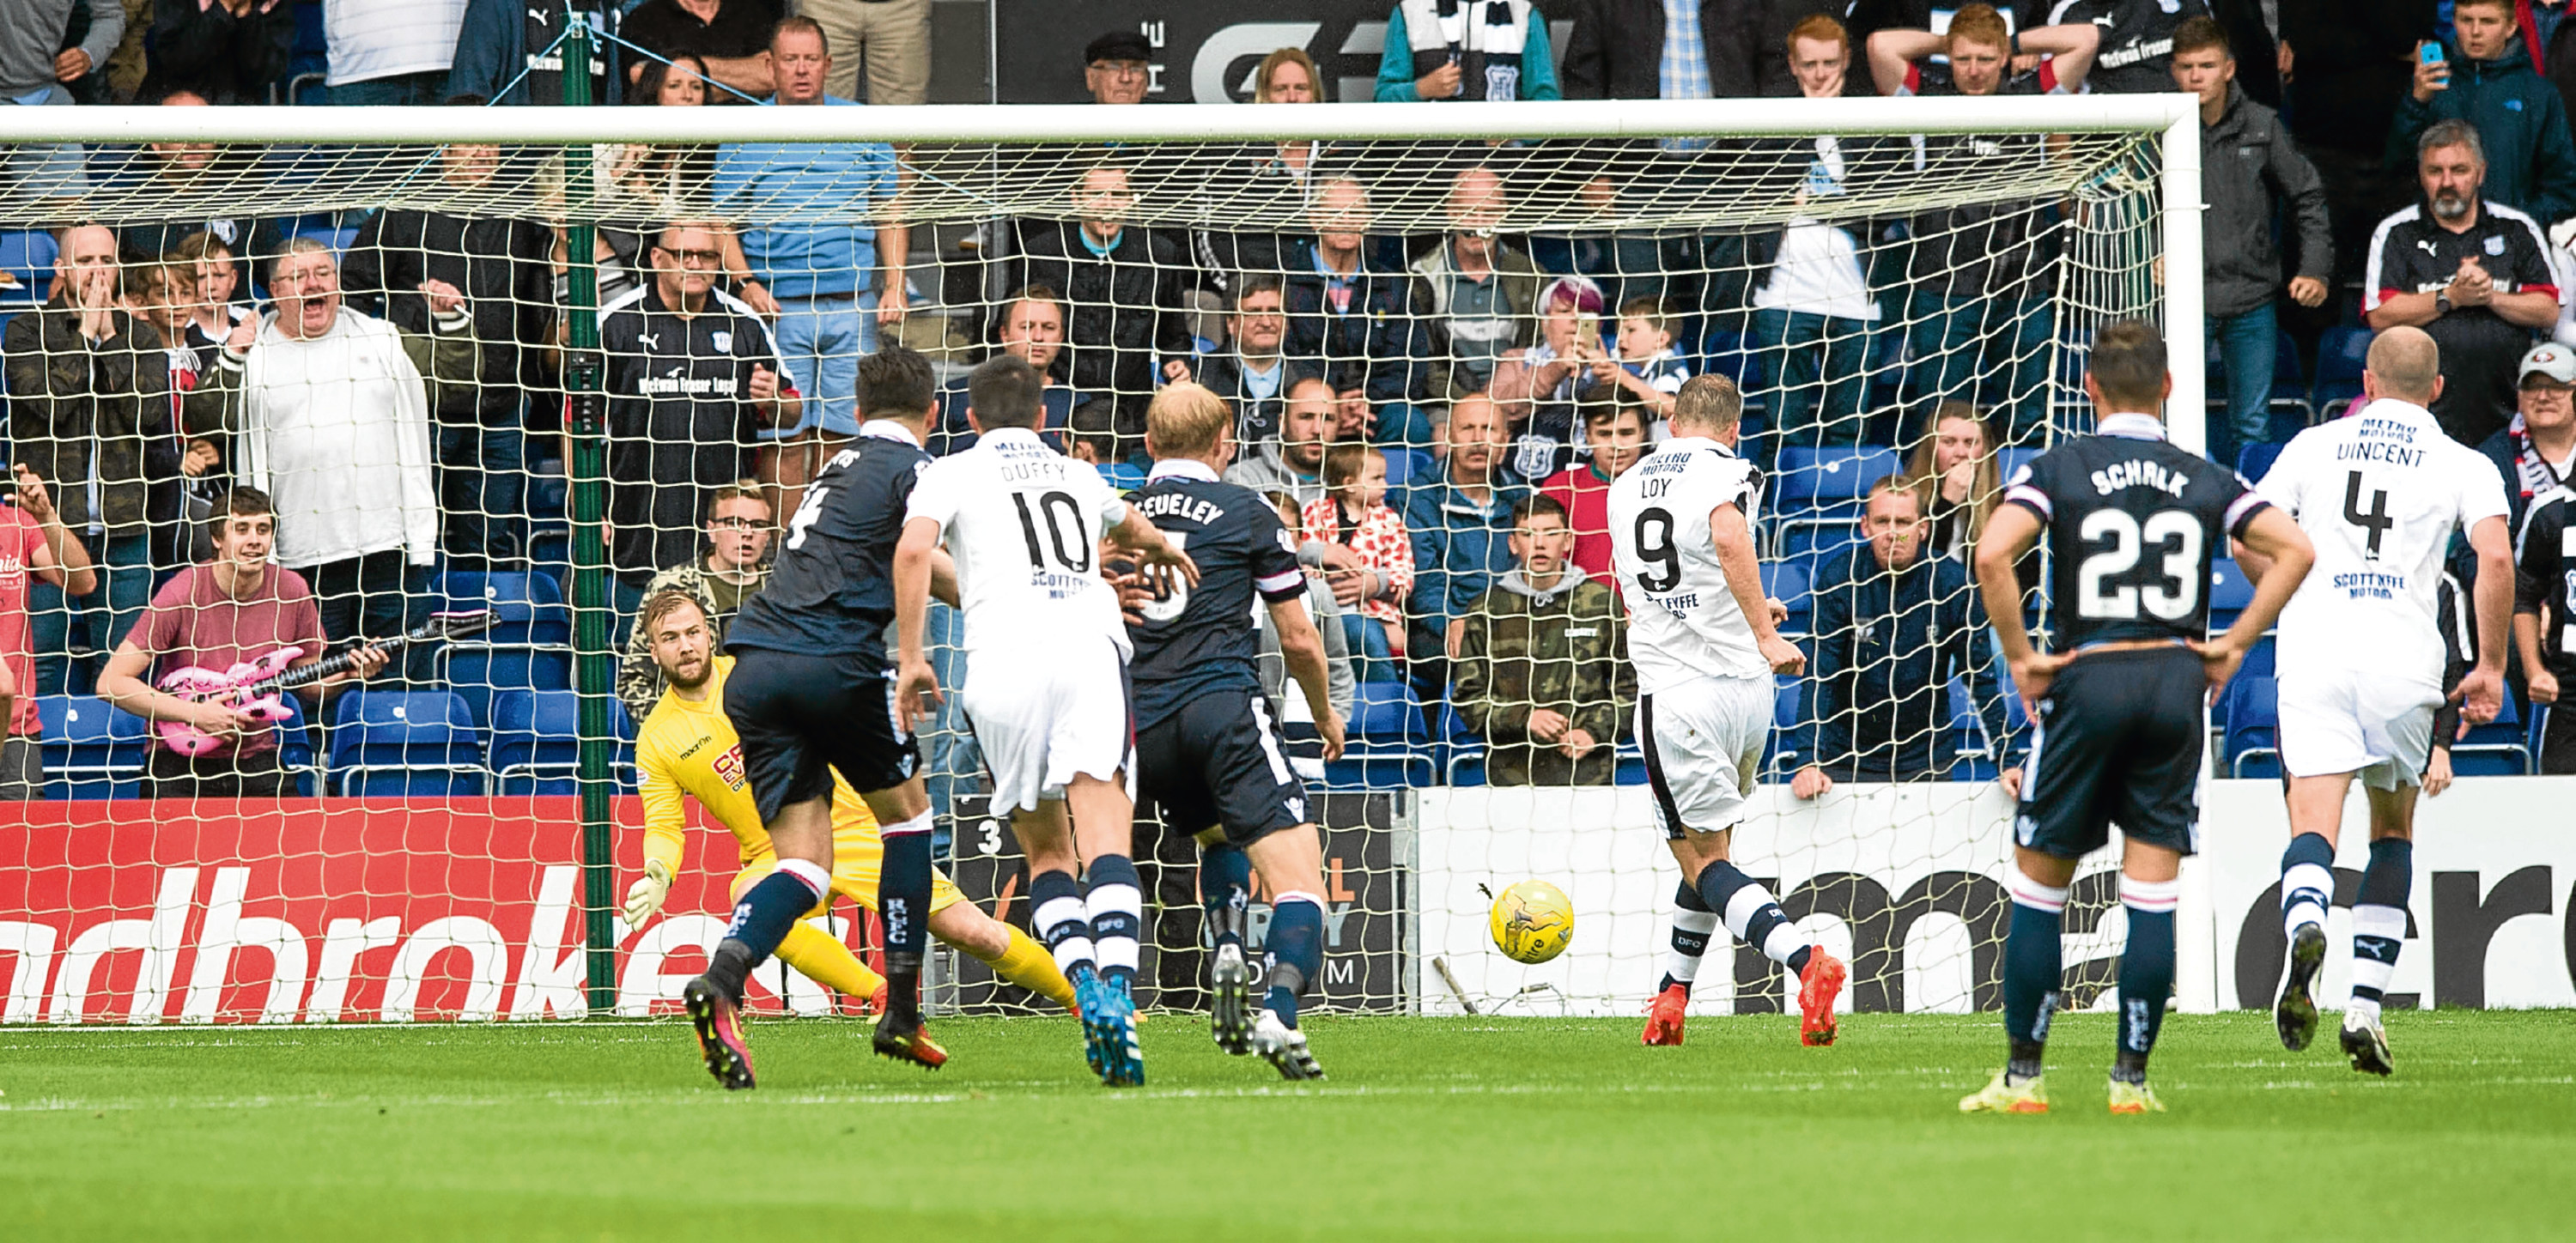 Rory Loy struck twice, once from the penalty spot (above), as Dundee beat Ross County 3-1 on the opening day of the league season in Dingwall.